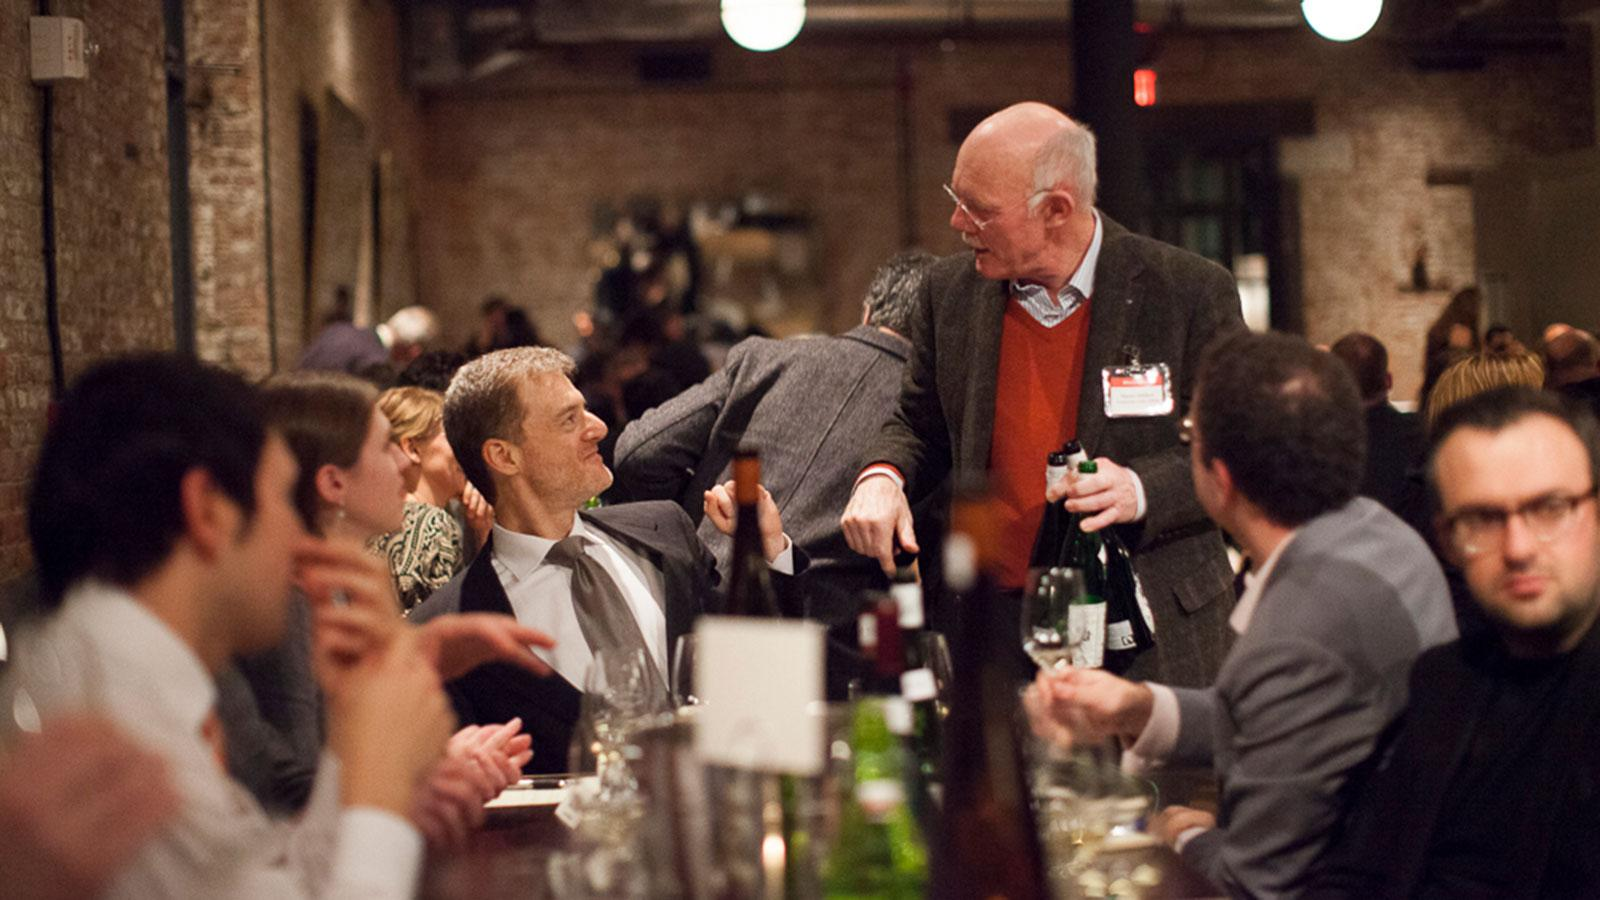 Riesling star Hanno Zilliken (standing) made the rounds at last year's Rieslingfeier.